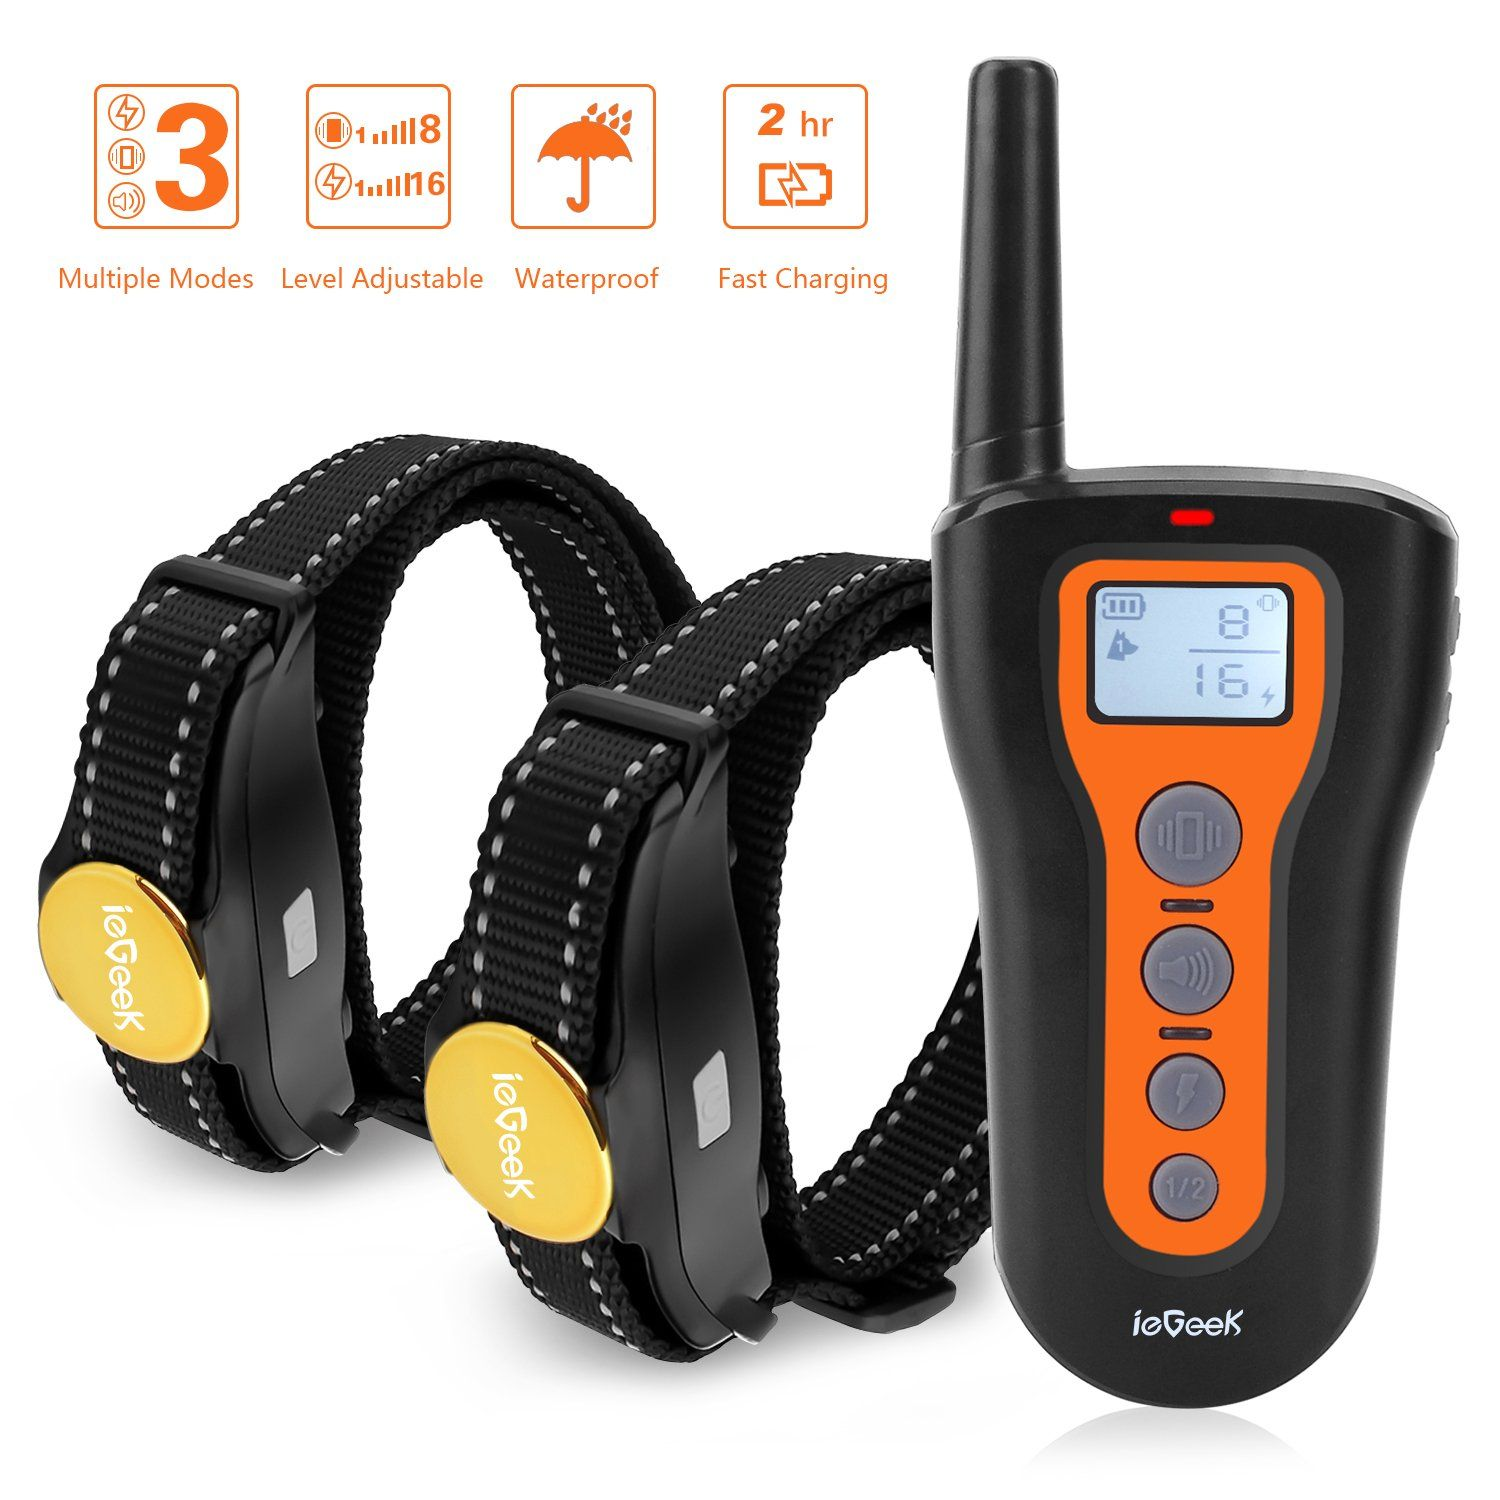 ieGeek Dog Training Collar 2 Dogs Shock Collars Remote Up